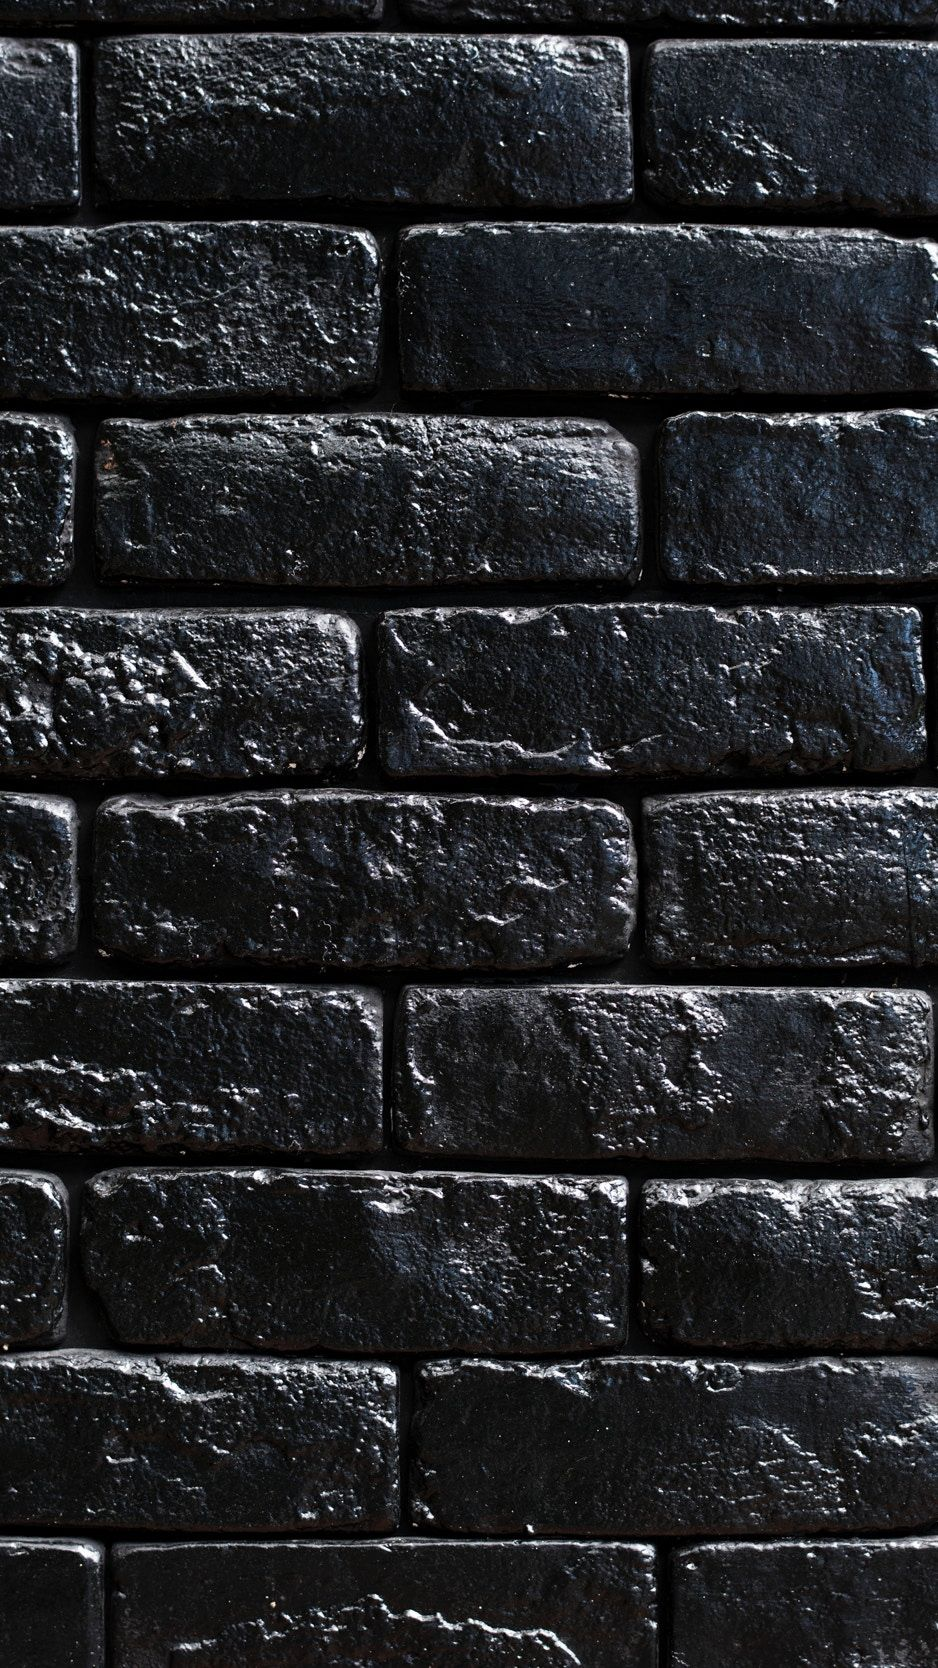 938x1668 Download wallpaper 938x1668 wall, bricks, black, paint ...